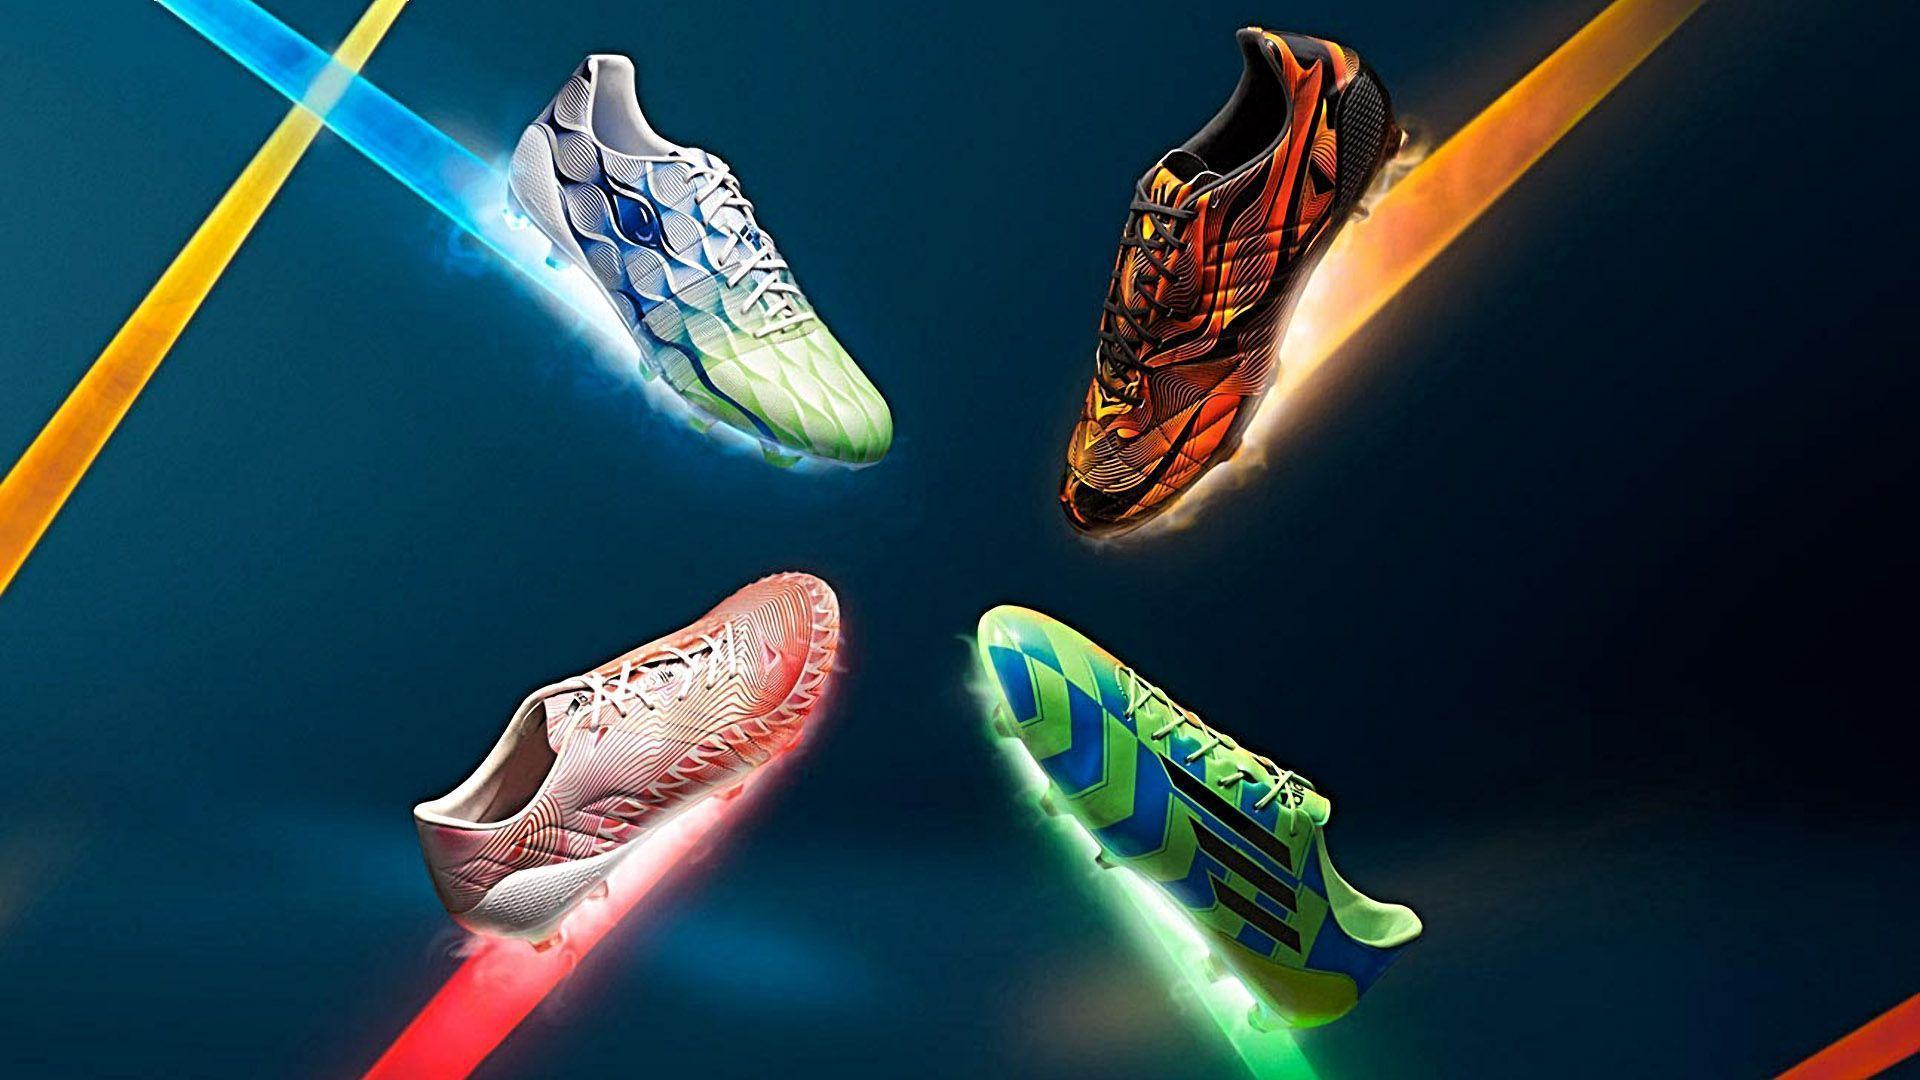 new concept c39d9 55490 Adidas Boots HD Wallpapers 6   Football Wallpapers   Pinterest .